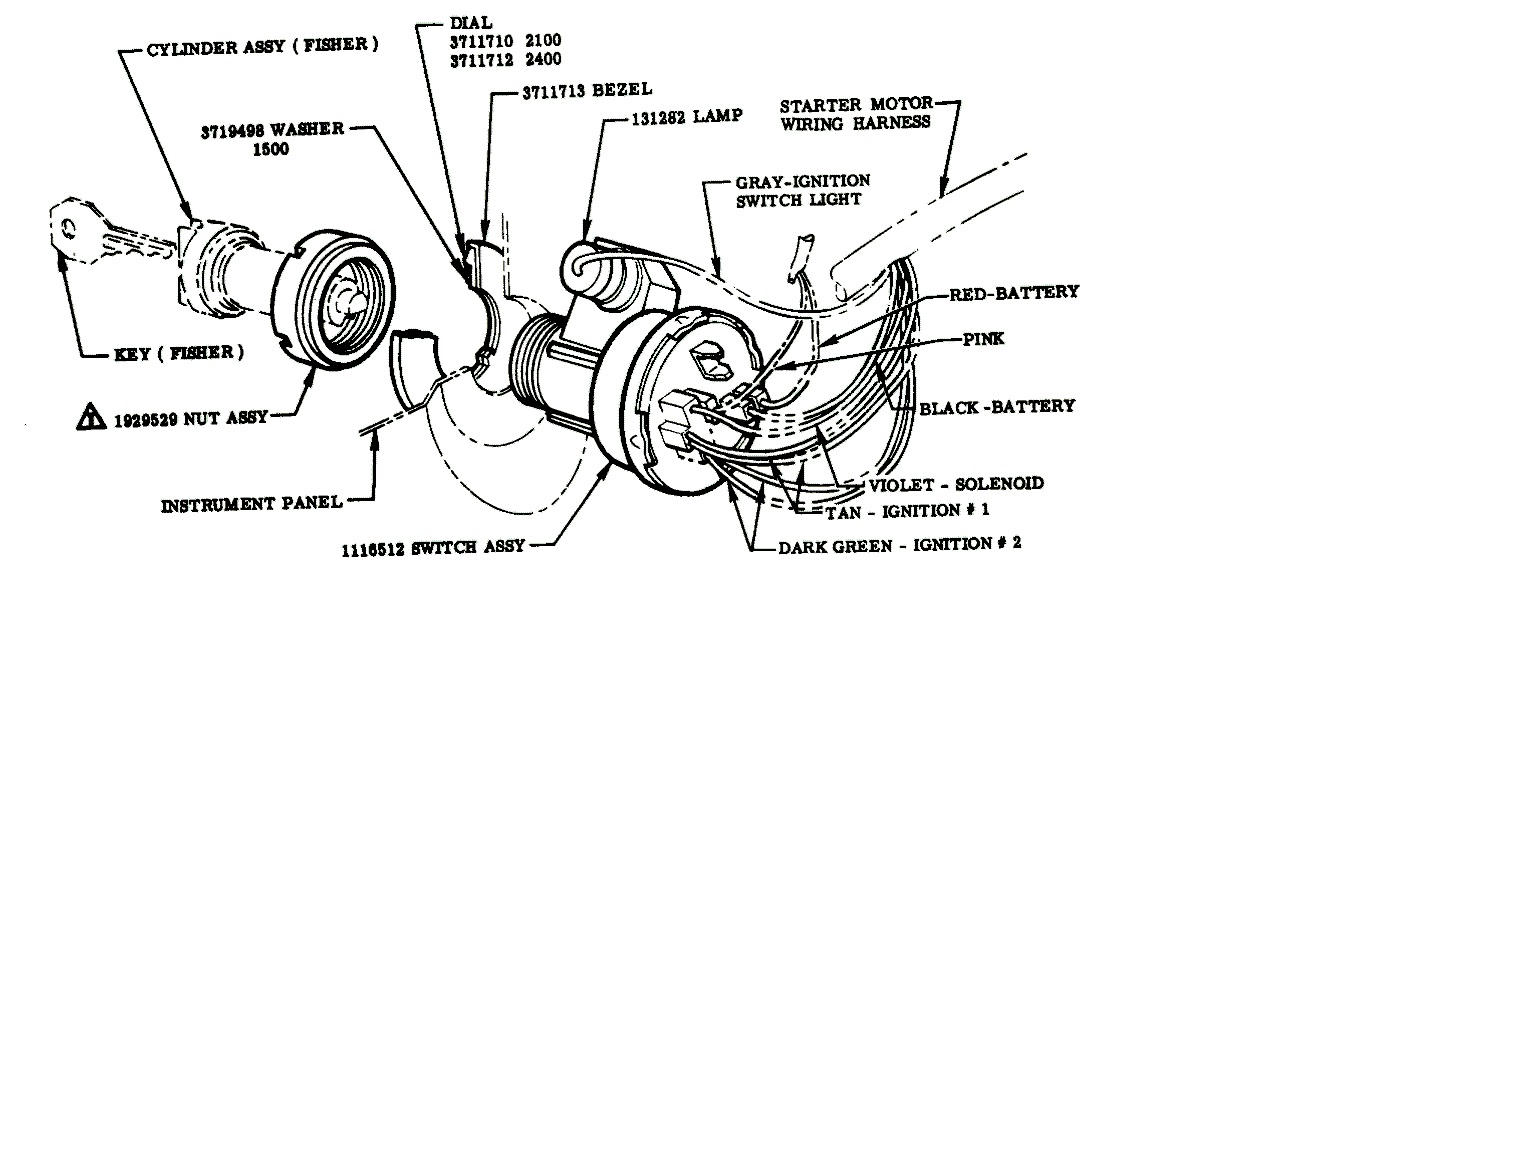 Gm Headlight Switch Wiring Diagram 1953 Opinions About Light 56 Chev Dimmer Trusted Rh Dafpods Co 1956 Chevy Basic